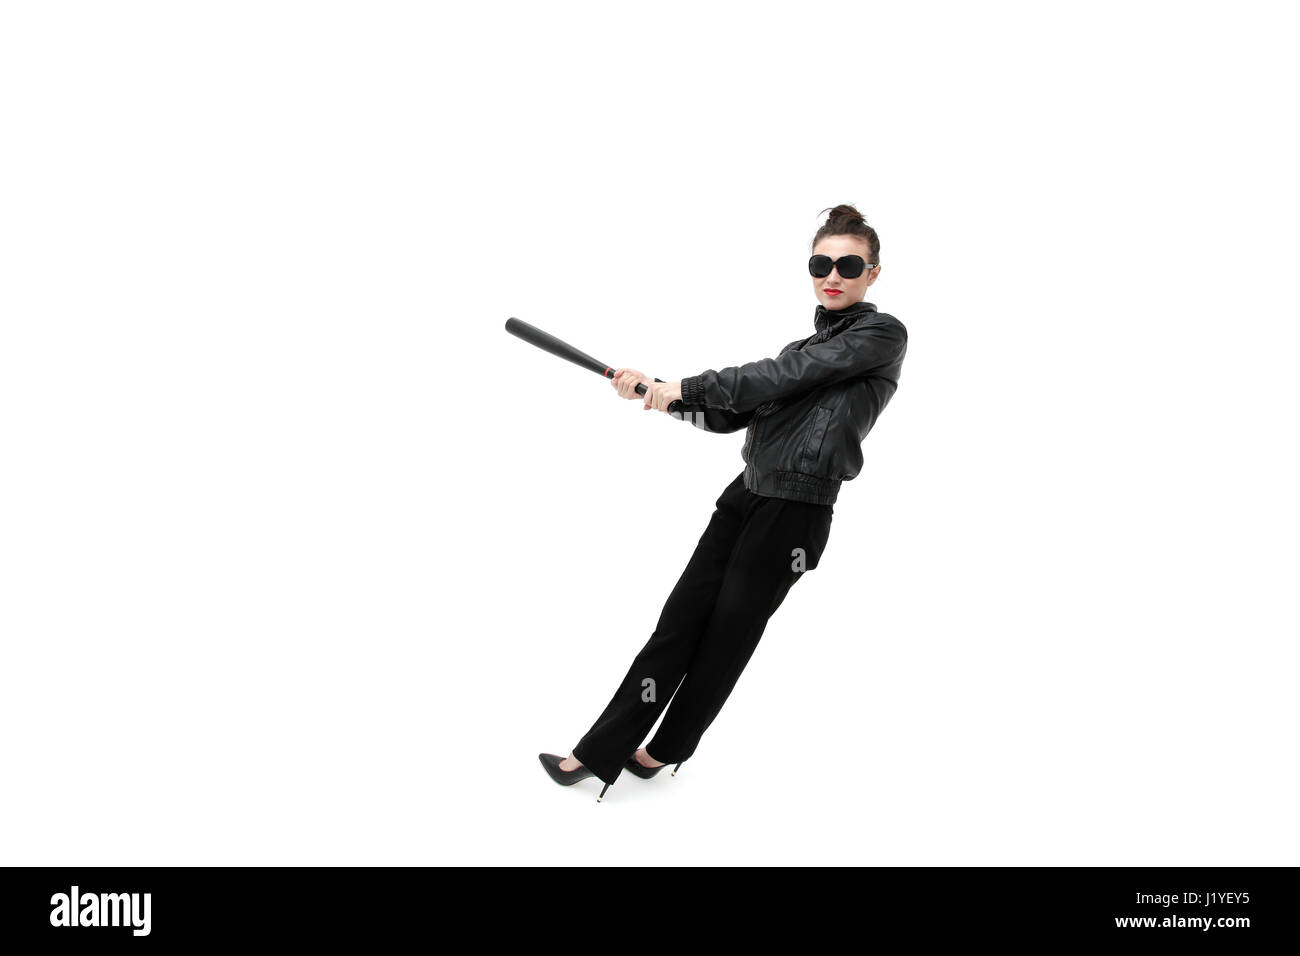 Portrait of an angry woman with a bat, isolated on white background. Serious and strict debt collector - Stock Image